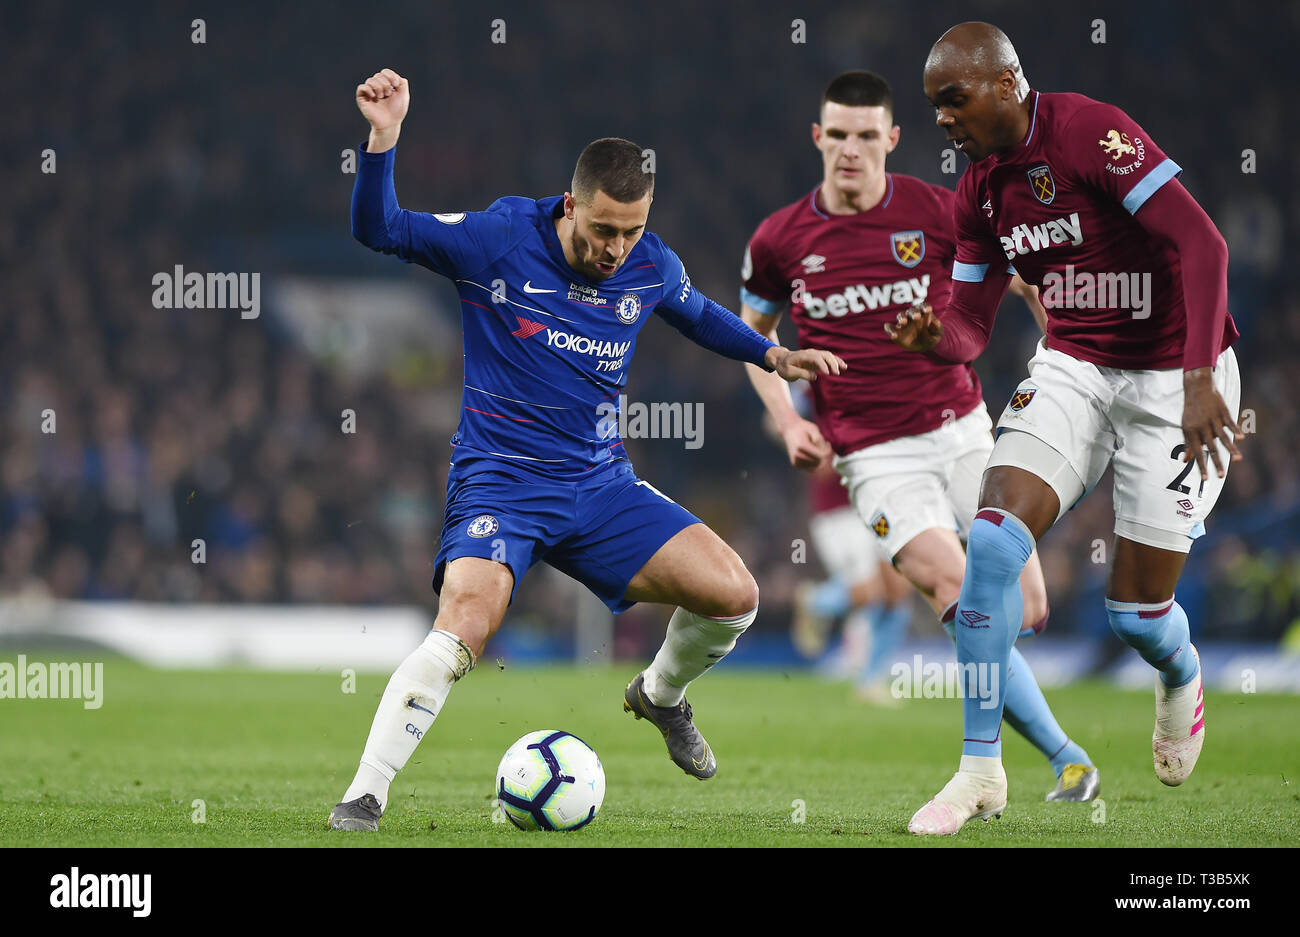 London, UK. 08th Apr, 2019. Eden Hazard of Chelsea during the Premier League match between Chelsea and West Ham United at Stamford Bridge on April 8th 2019 in London, England. (Photo by Zed Jameson/phcimages.com) Credit: PHC Images/Alamy Live News Stock Photo